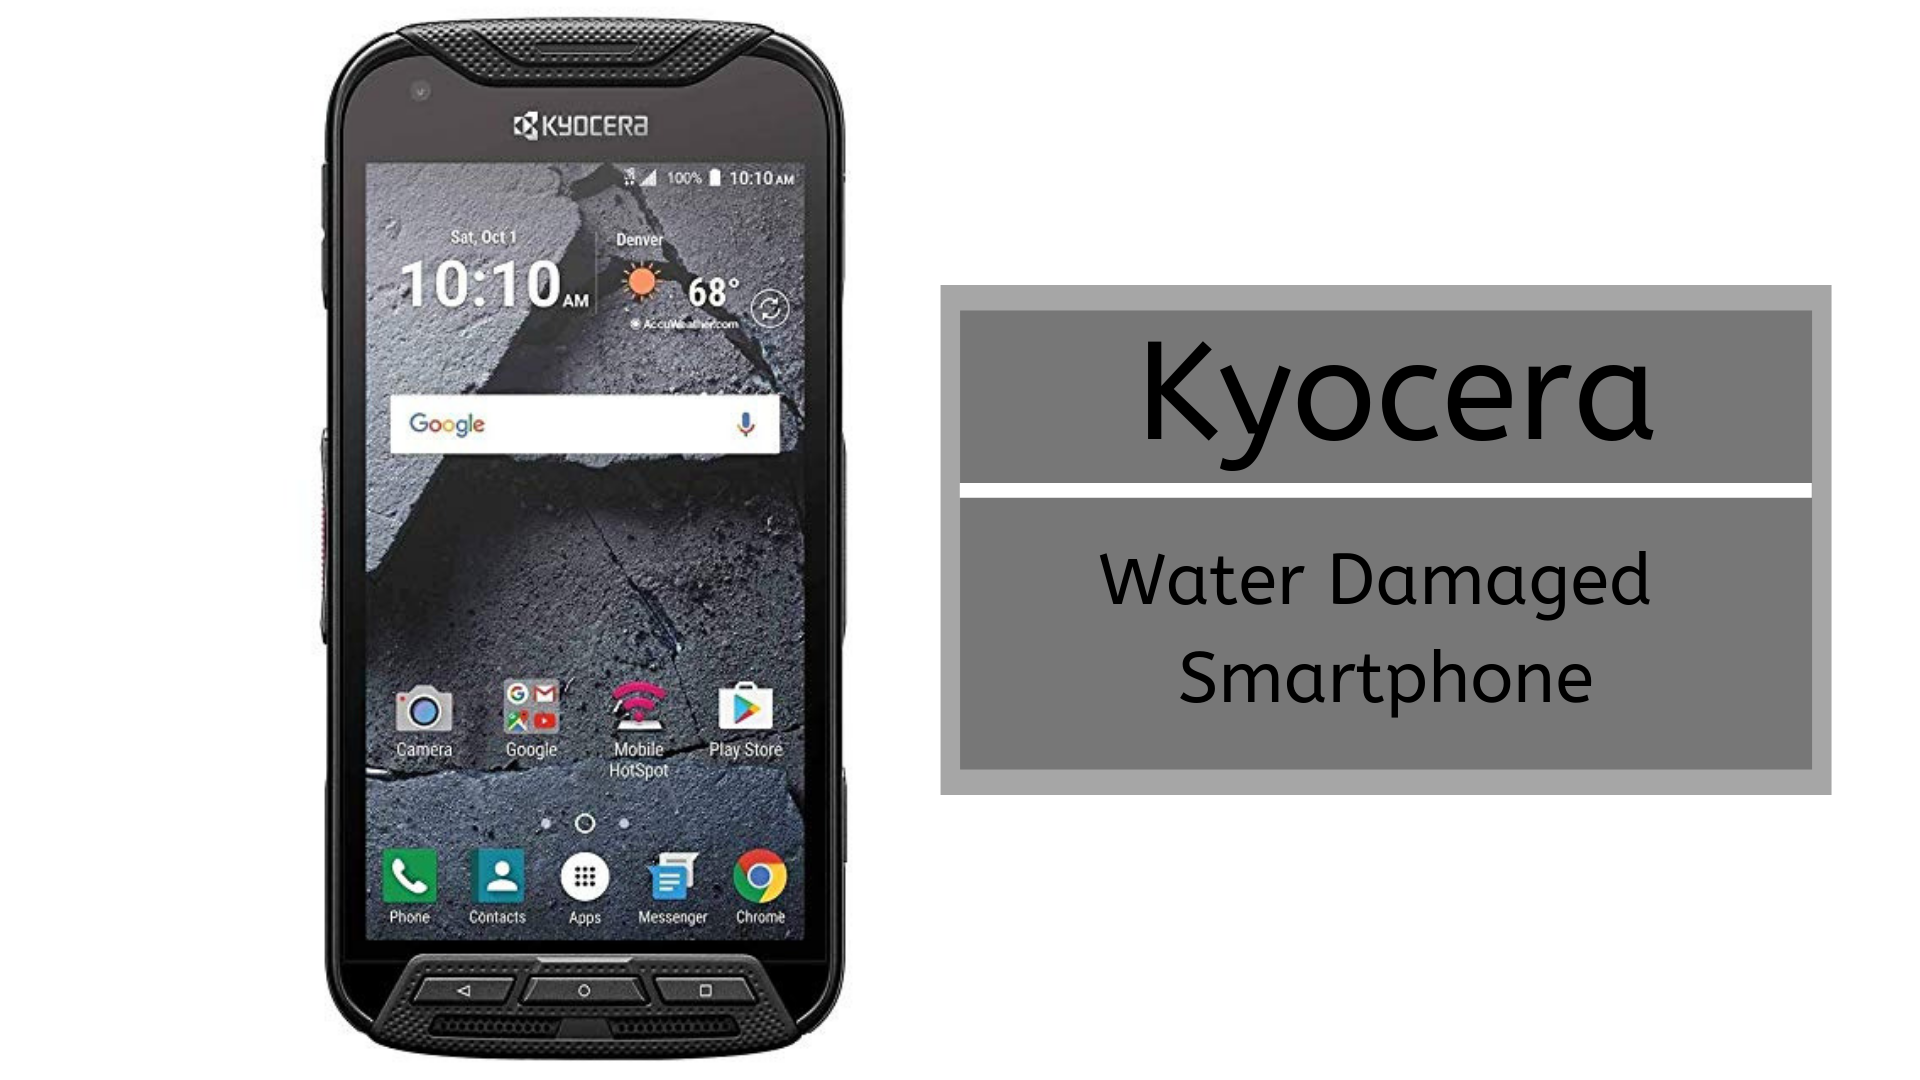 How To Fix Kyocera Water Damaged Smartphone [Quick Guide]